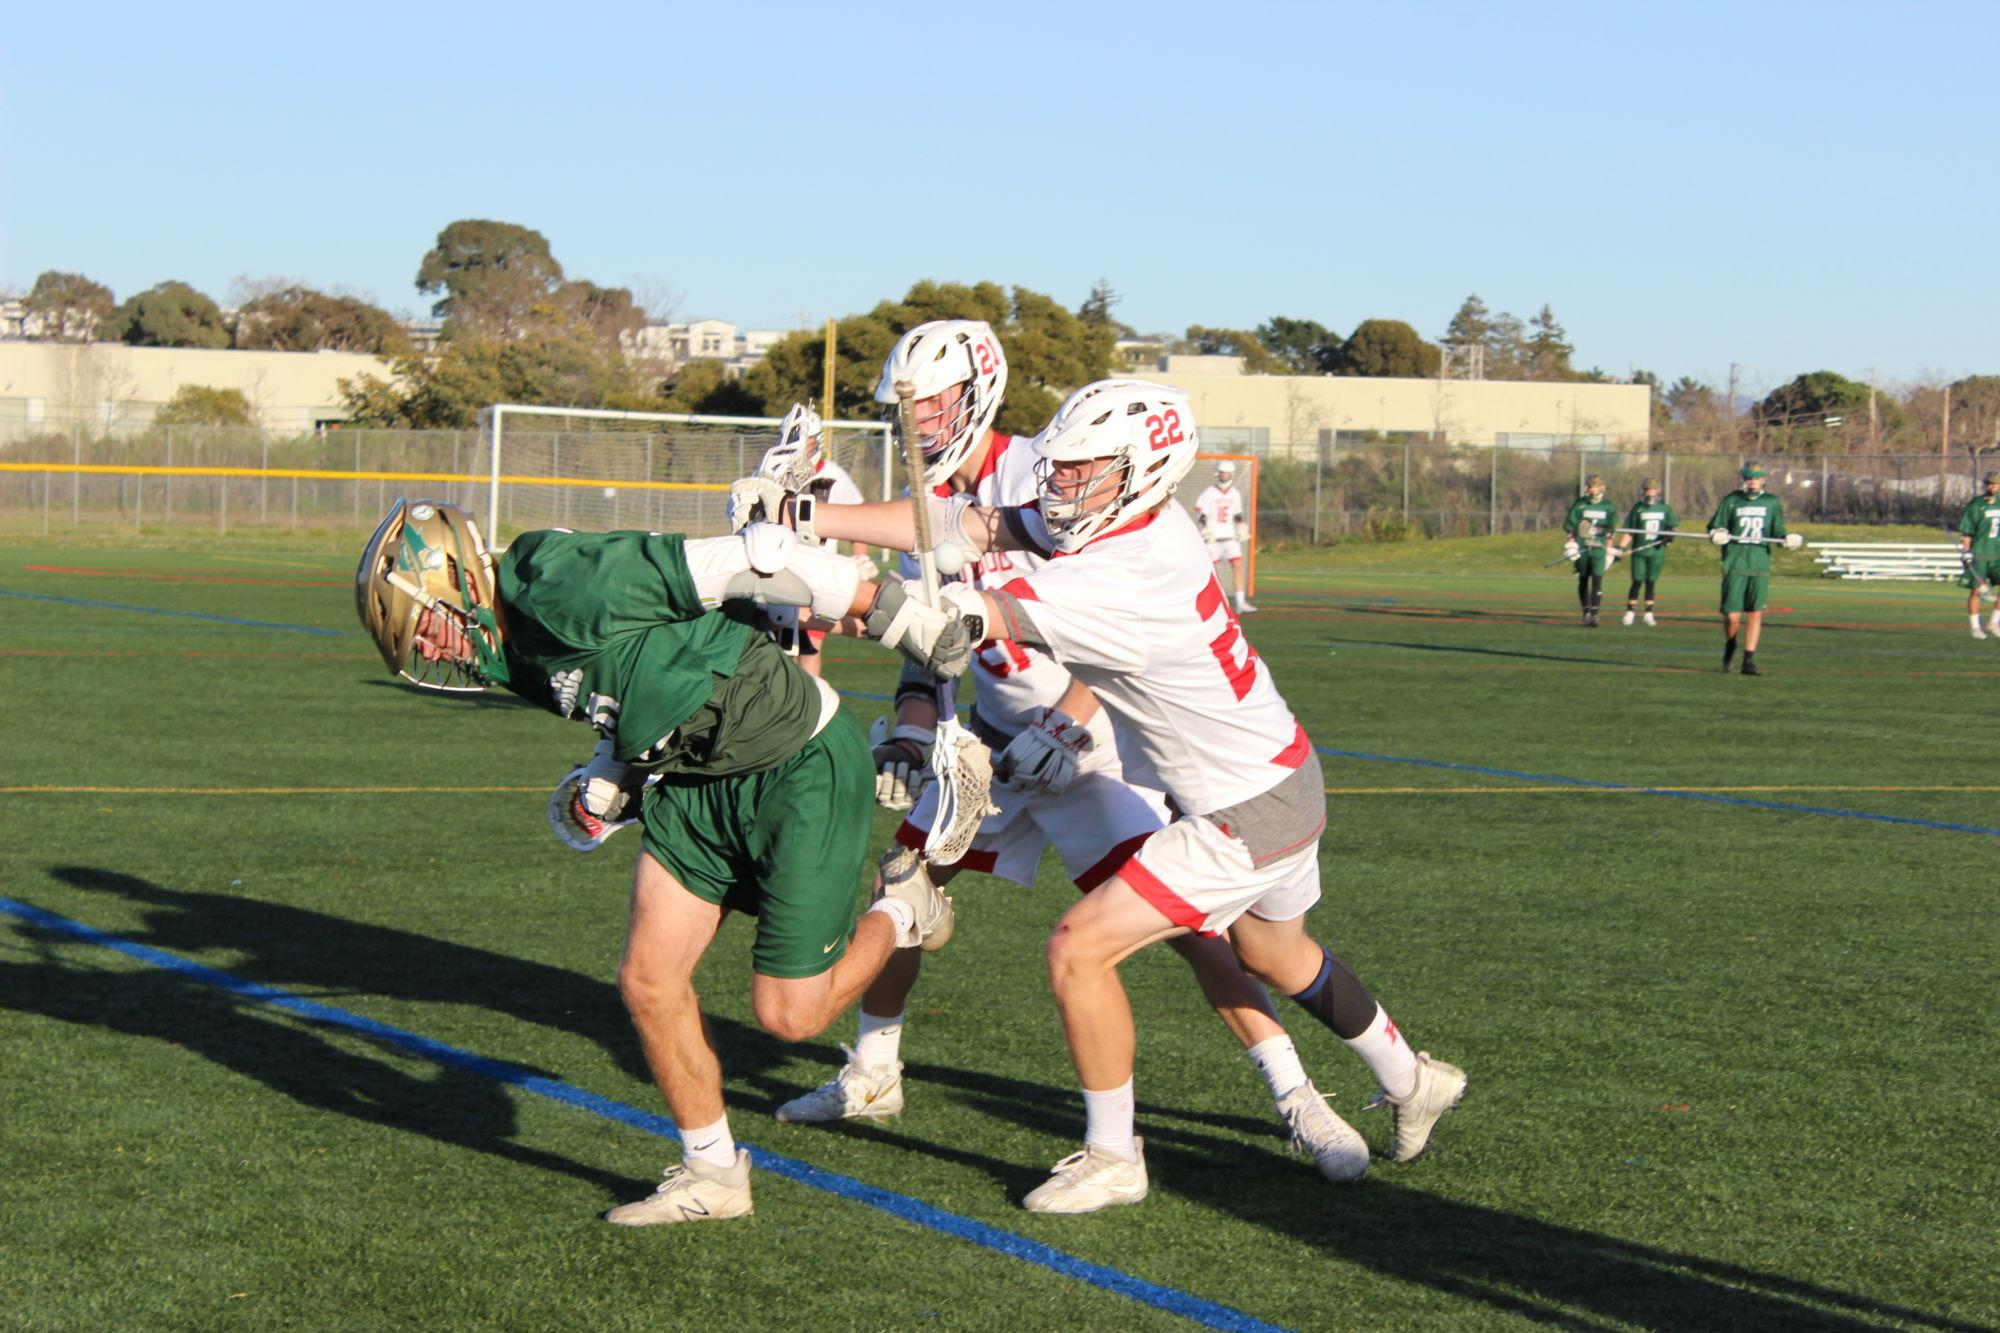 Boy's varsity lacrosse secures first victory of the season